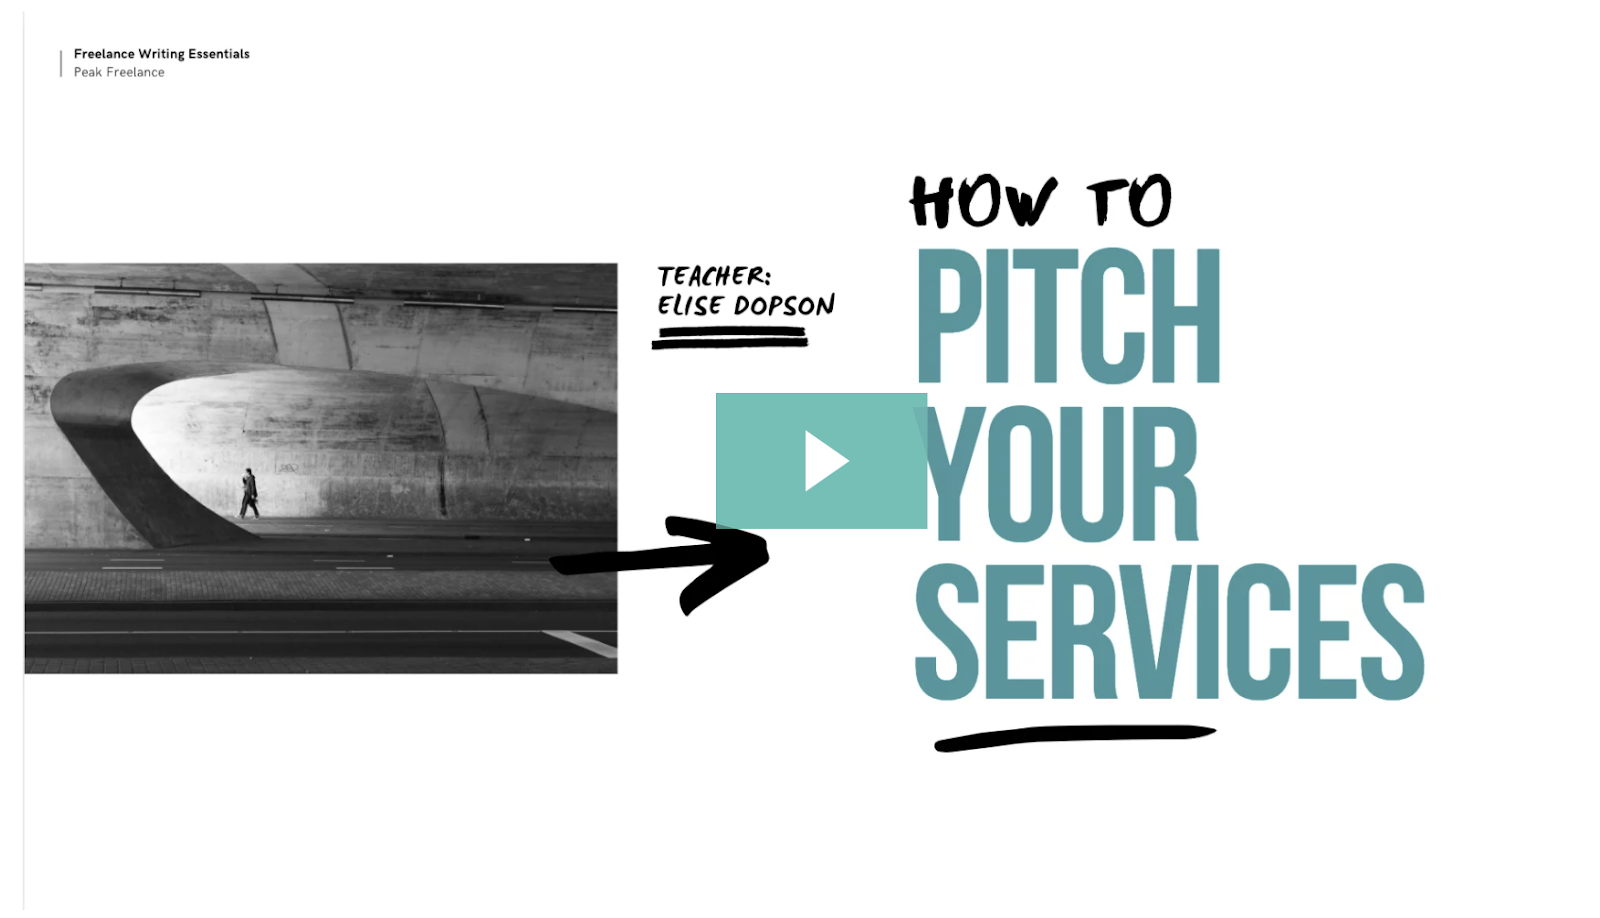 how to pitch your services video